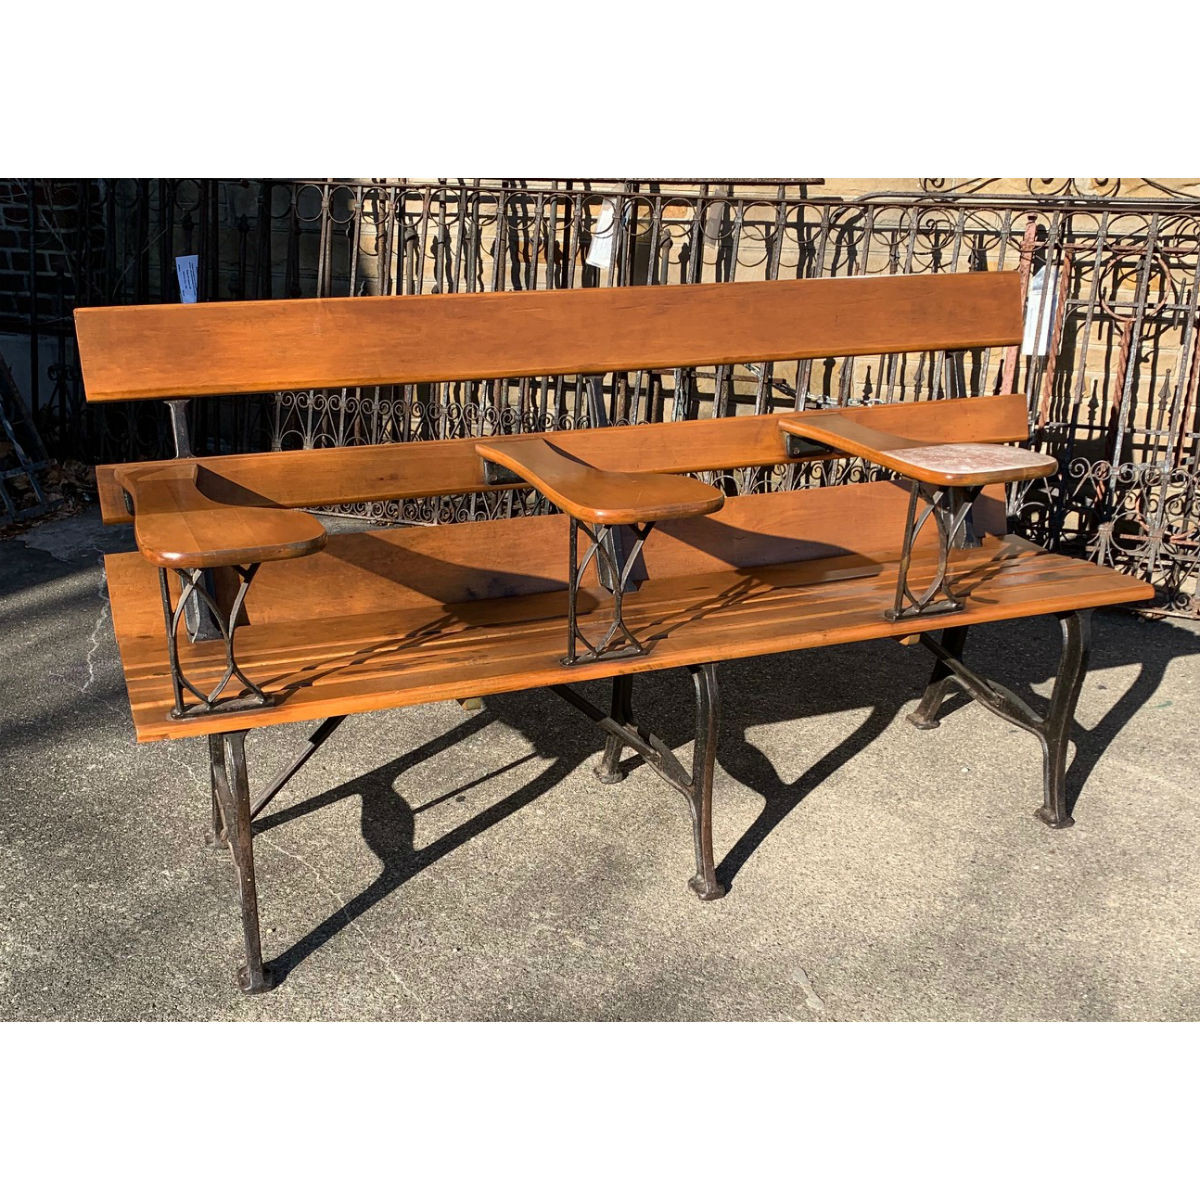 F19198 - Antique Revival Period Maple School Bench